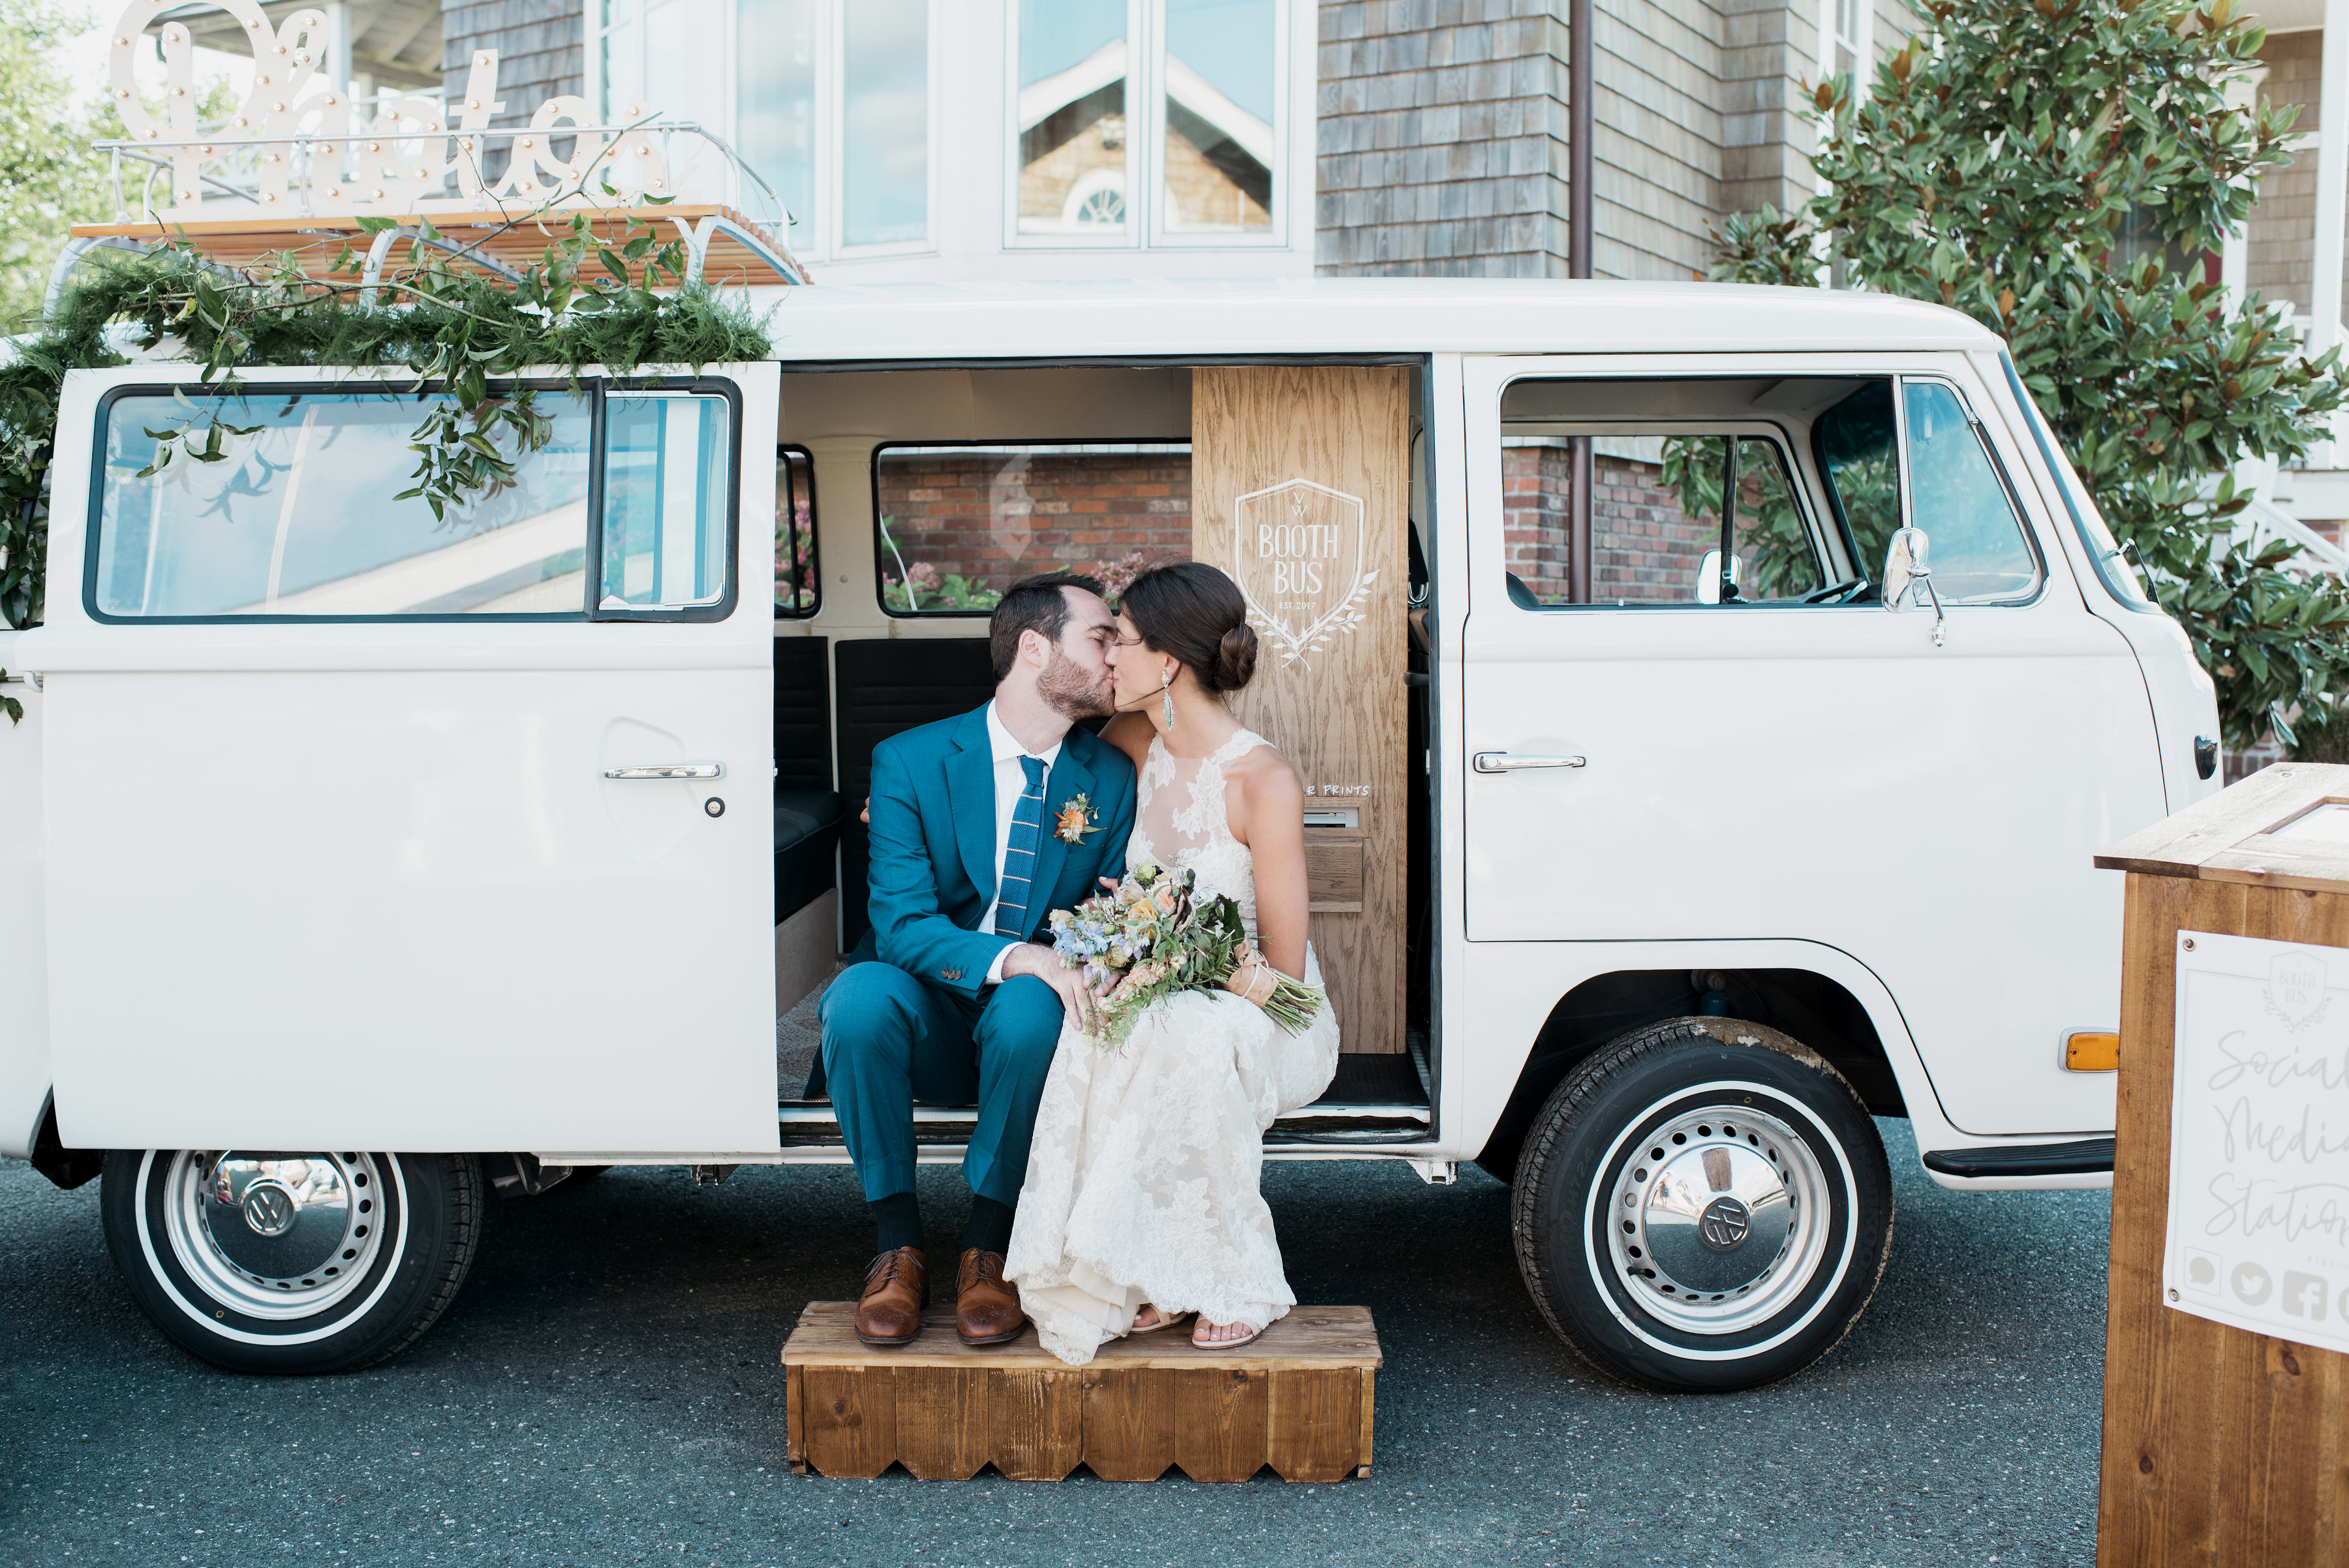 Vw bus photo booth pricing